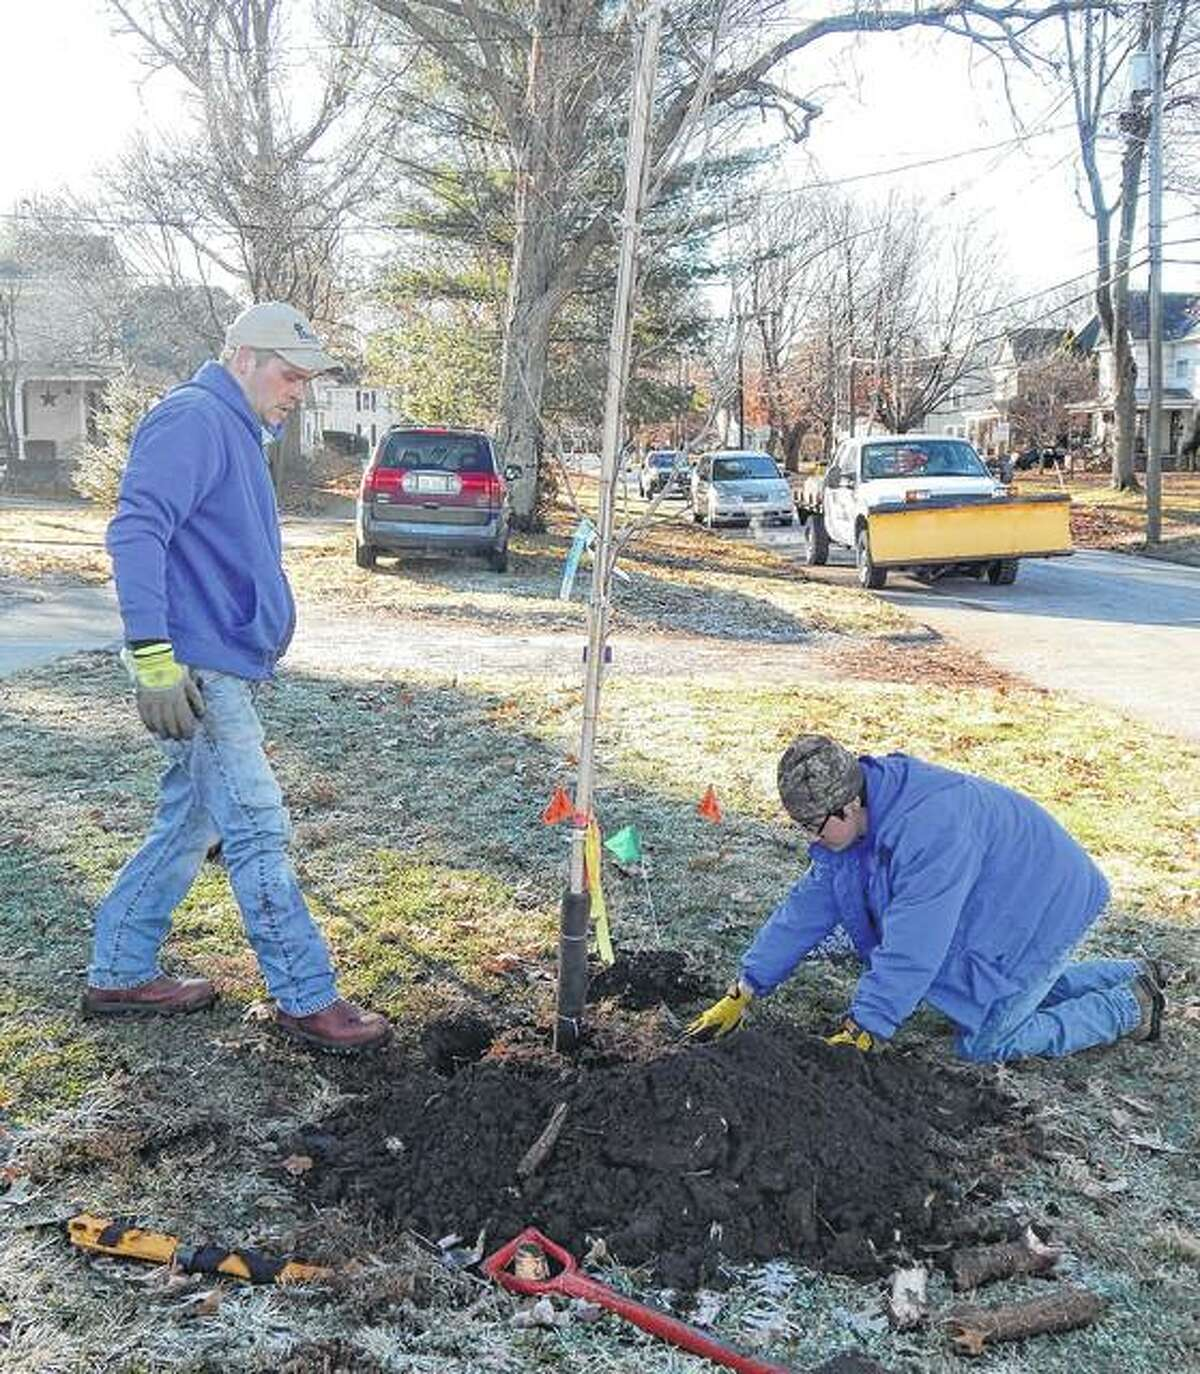 Jake Weimer (left) and Will Carrillo of Hembrough Tree and Lawn Care plant a Legacy maple tree on Monday morning in the 200 block of Caldwell Street. The tree, part of a Jacksonville Rotary Club project to bolster the city's tree canopy, is one of six that were to be planted Monday, bringing the project total to date to around 50 trees, Rotary member Mike Flynn said.